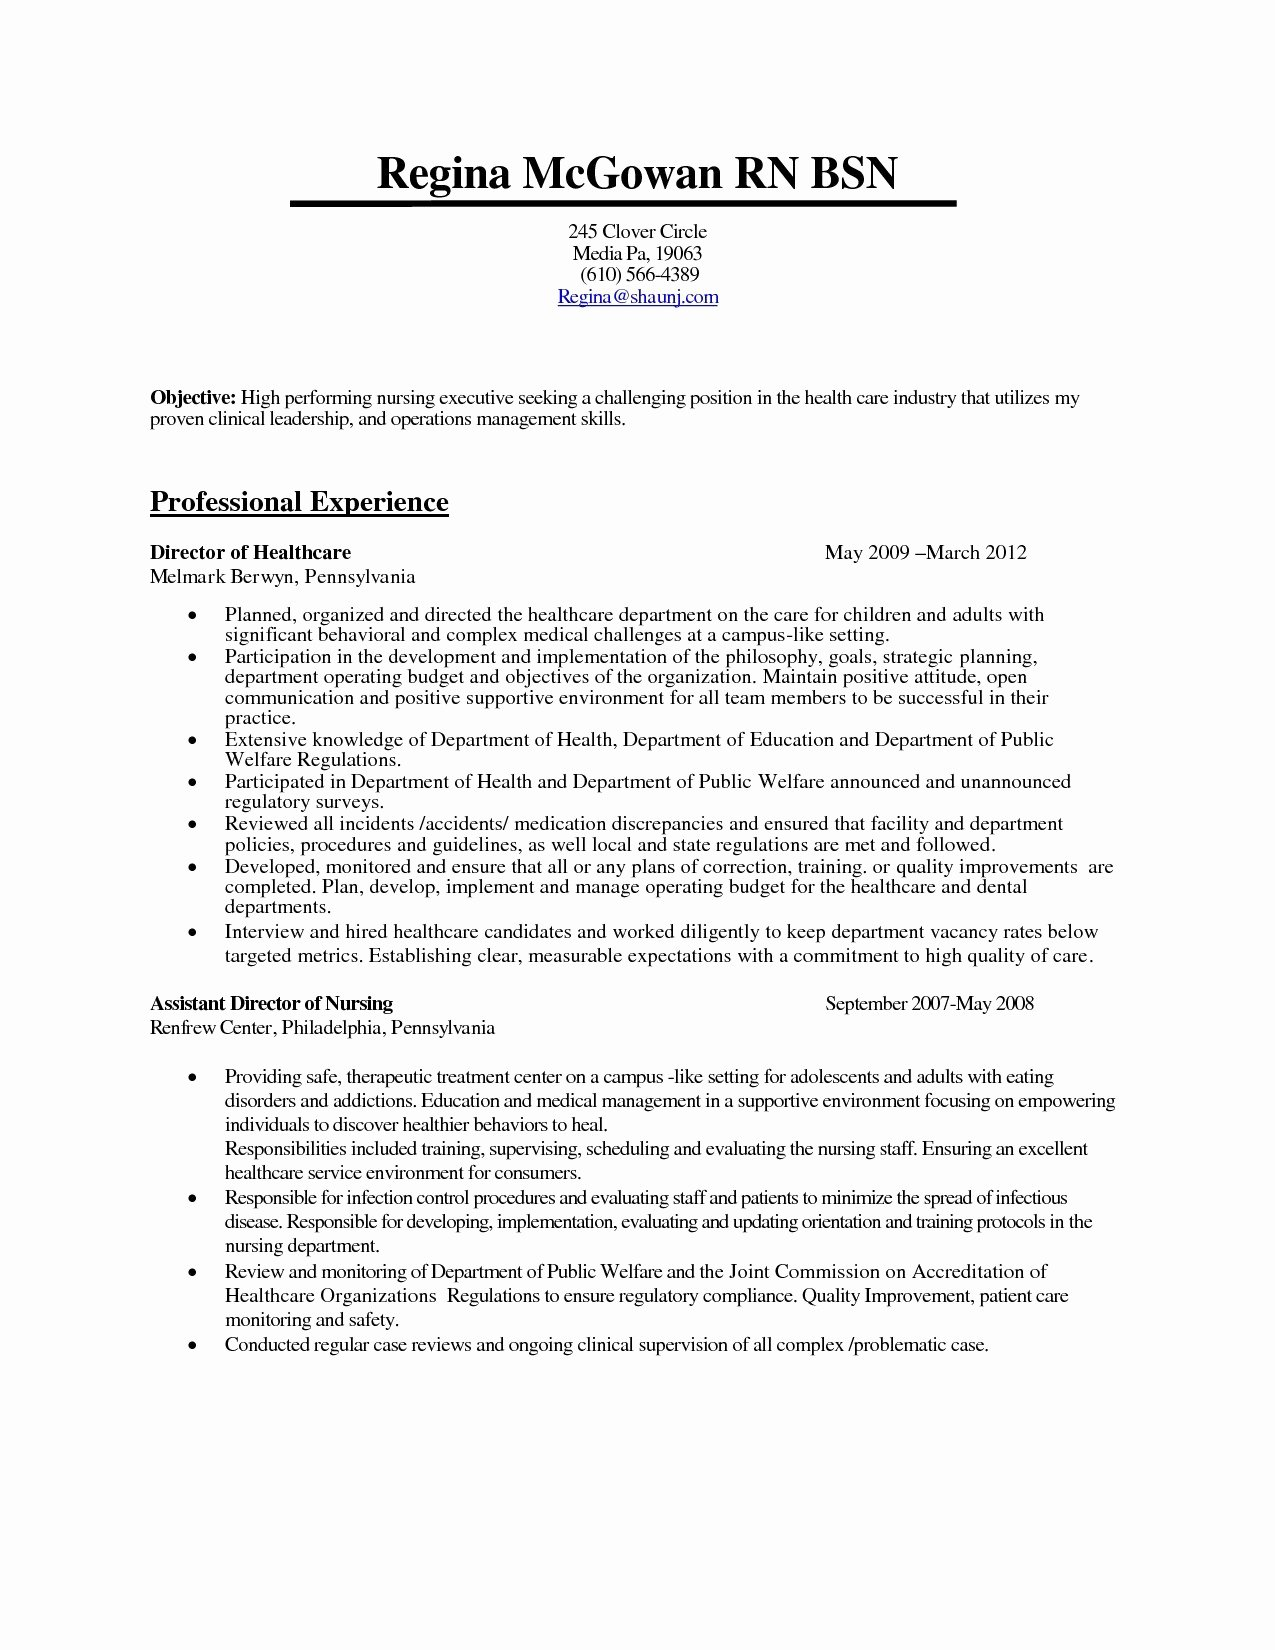 How to Write A Simple Resume New Resume Phrases Updated